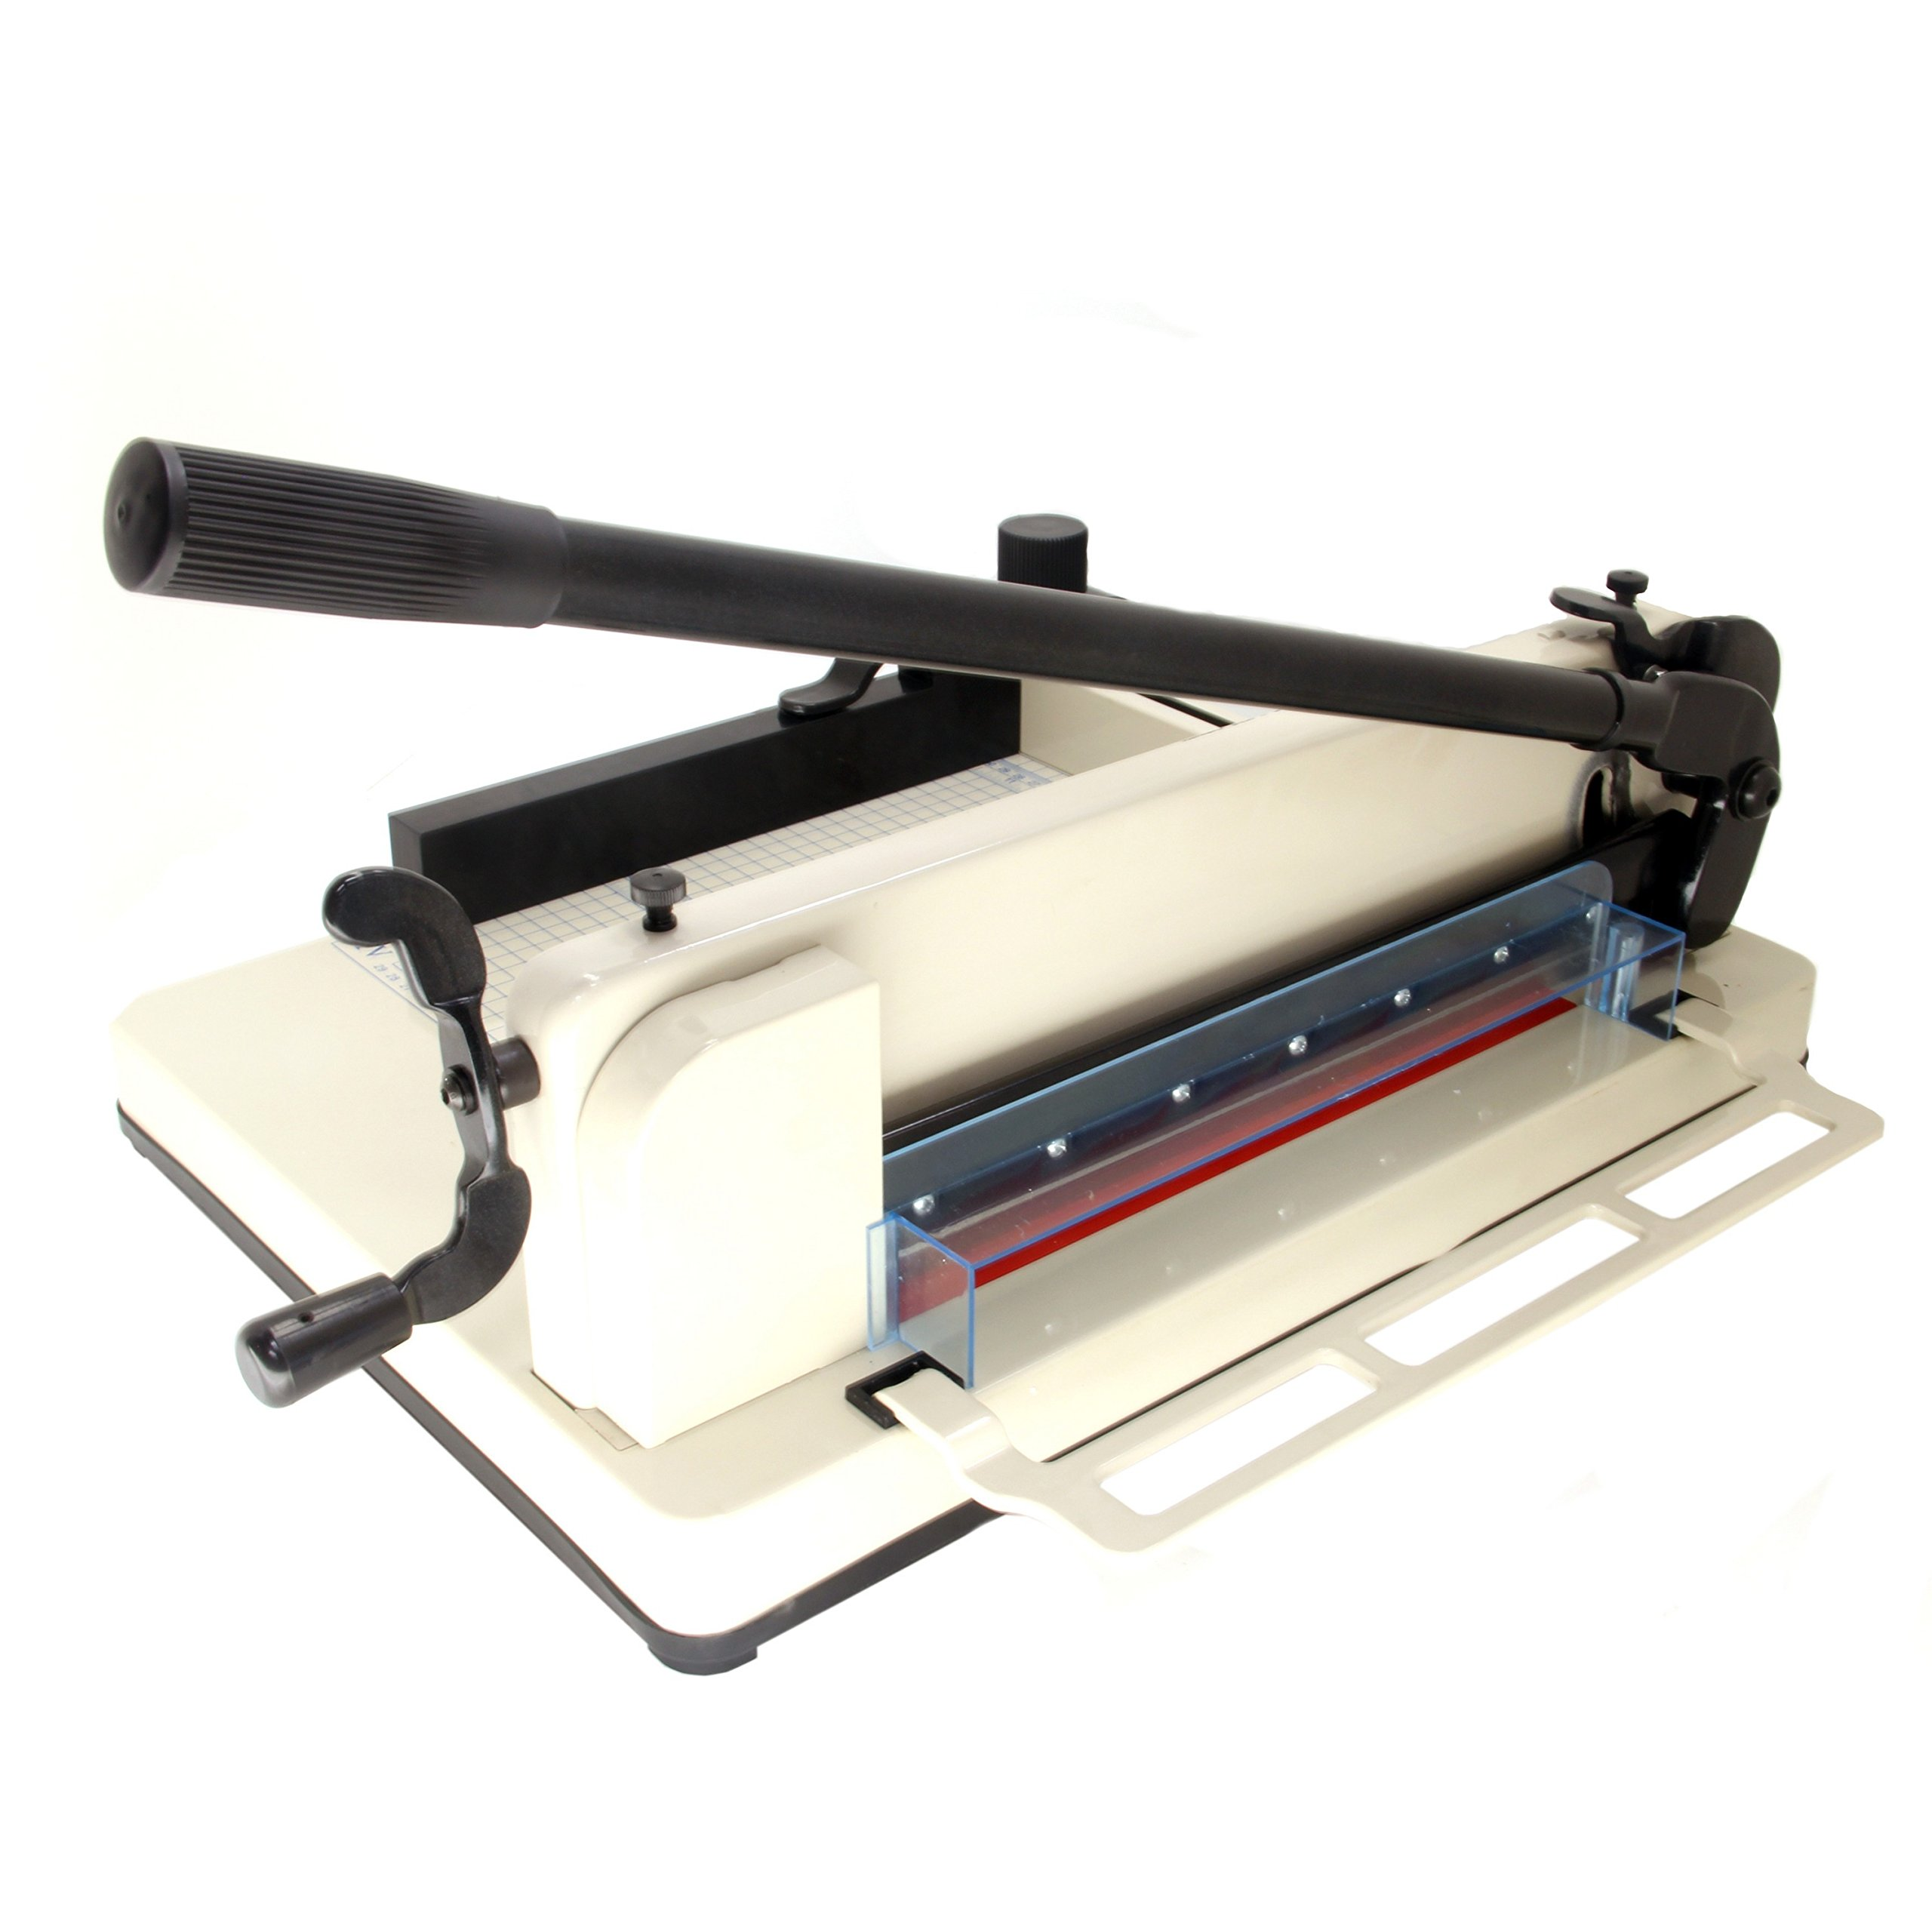 HFS (R) New Heavy Duty Guillotine Paper Cutter - 12'' Commercial Metal Base A3/A4 Trimmer by HFS